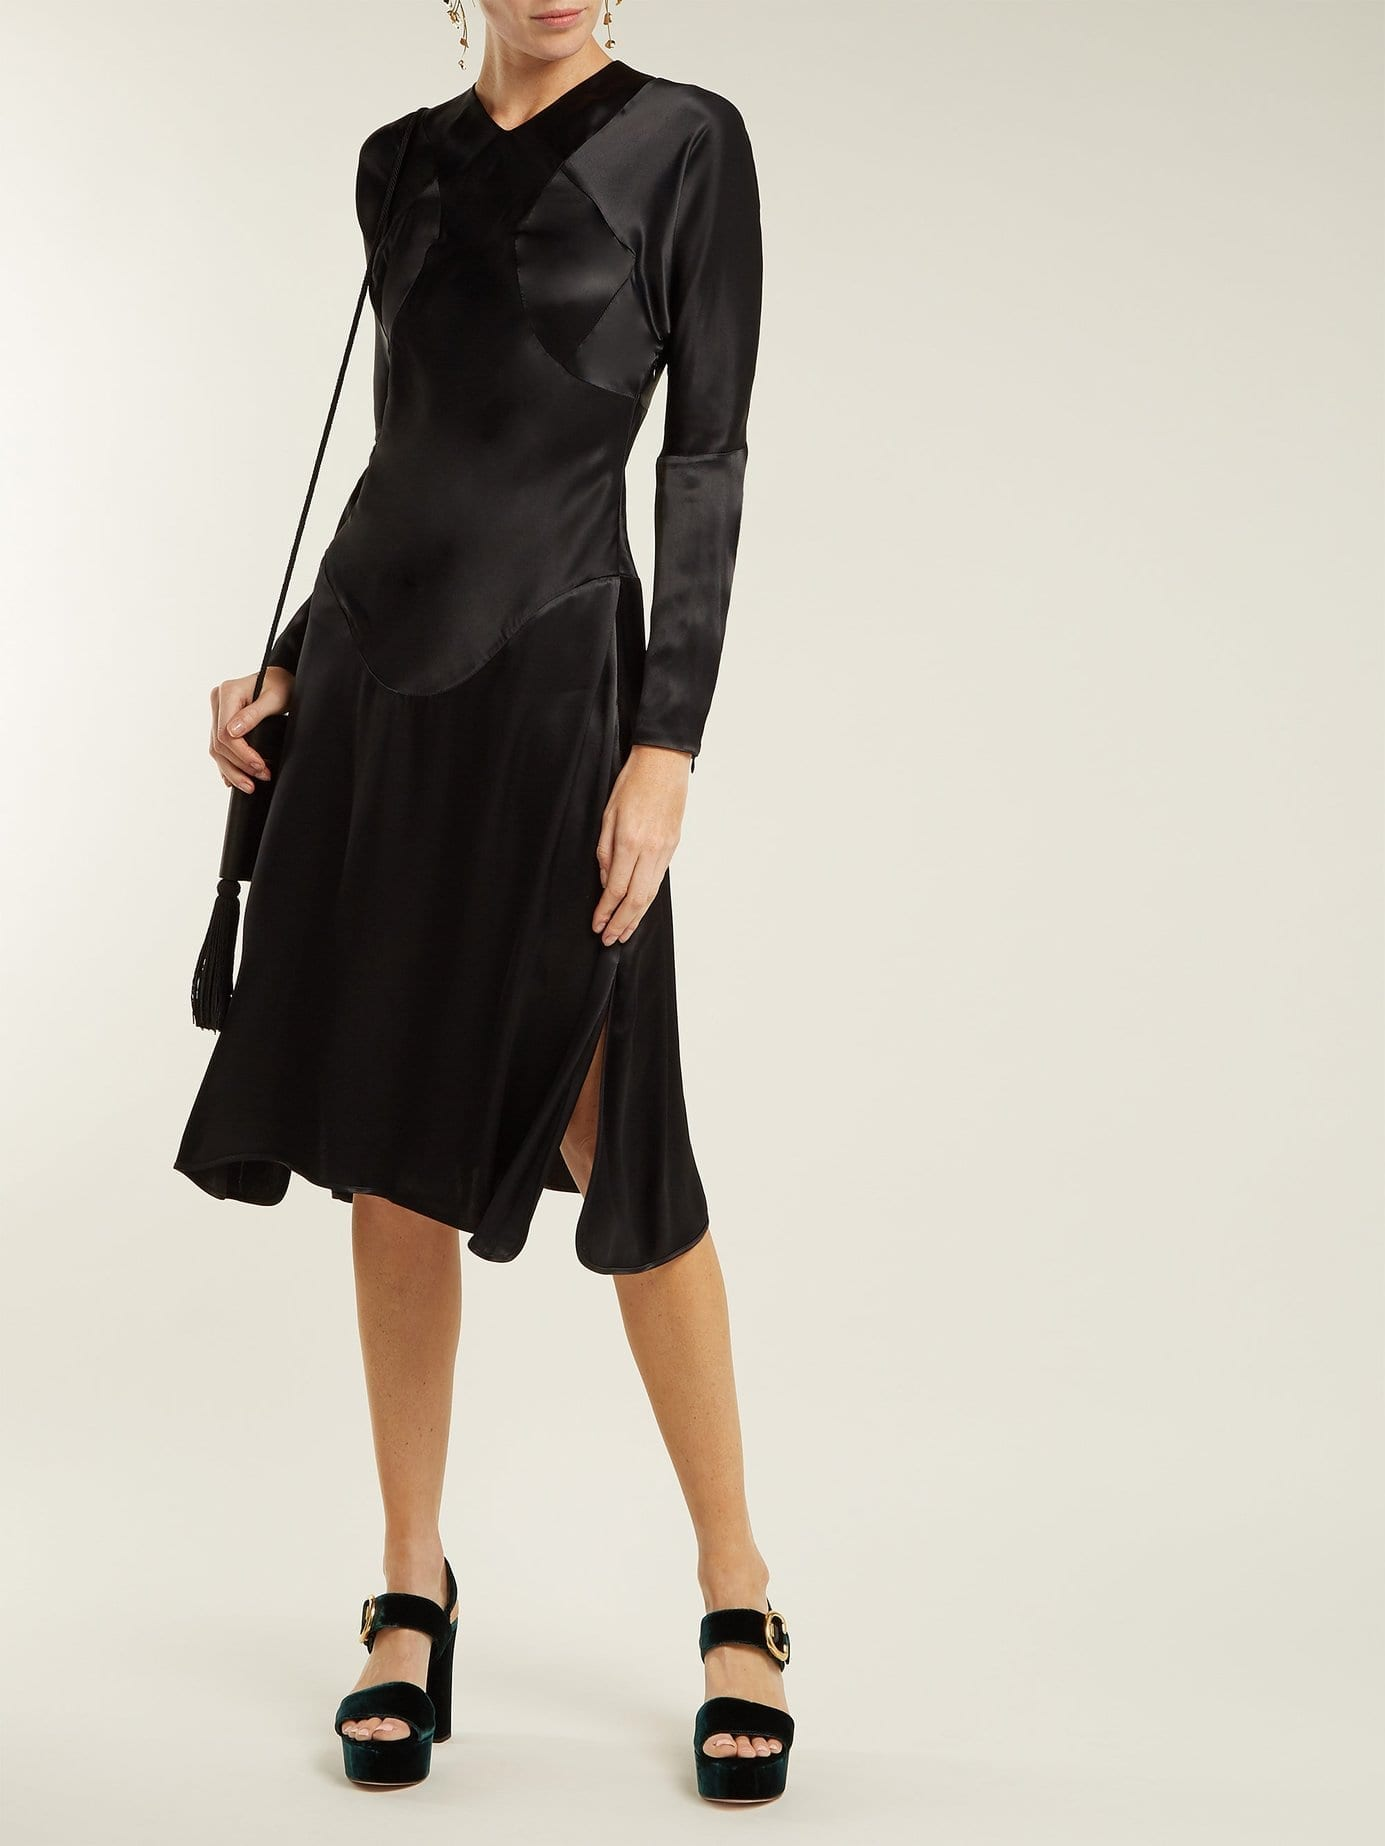 VIVIENNE WESTWOOD ANGLOMANIA Panelled Long Sleeved Satin Black Dress